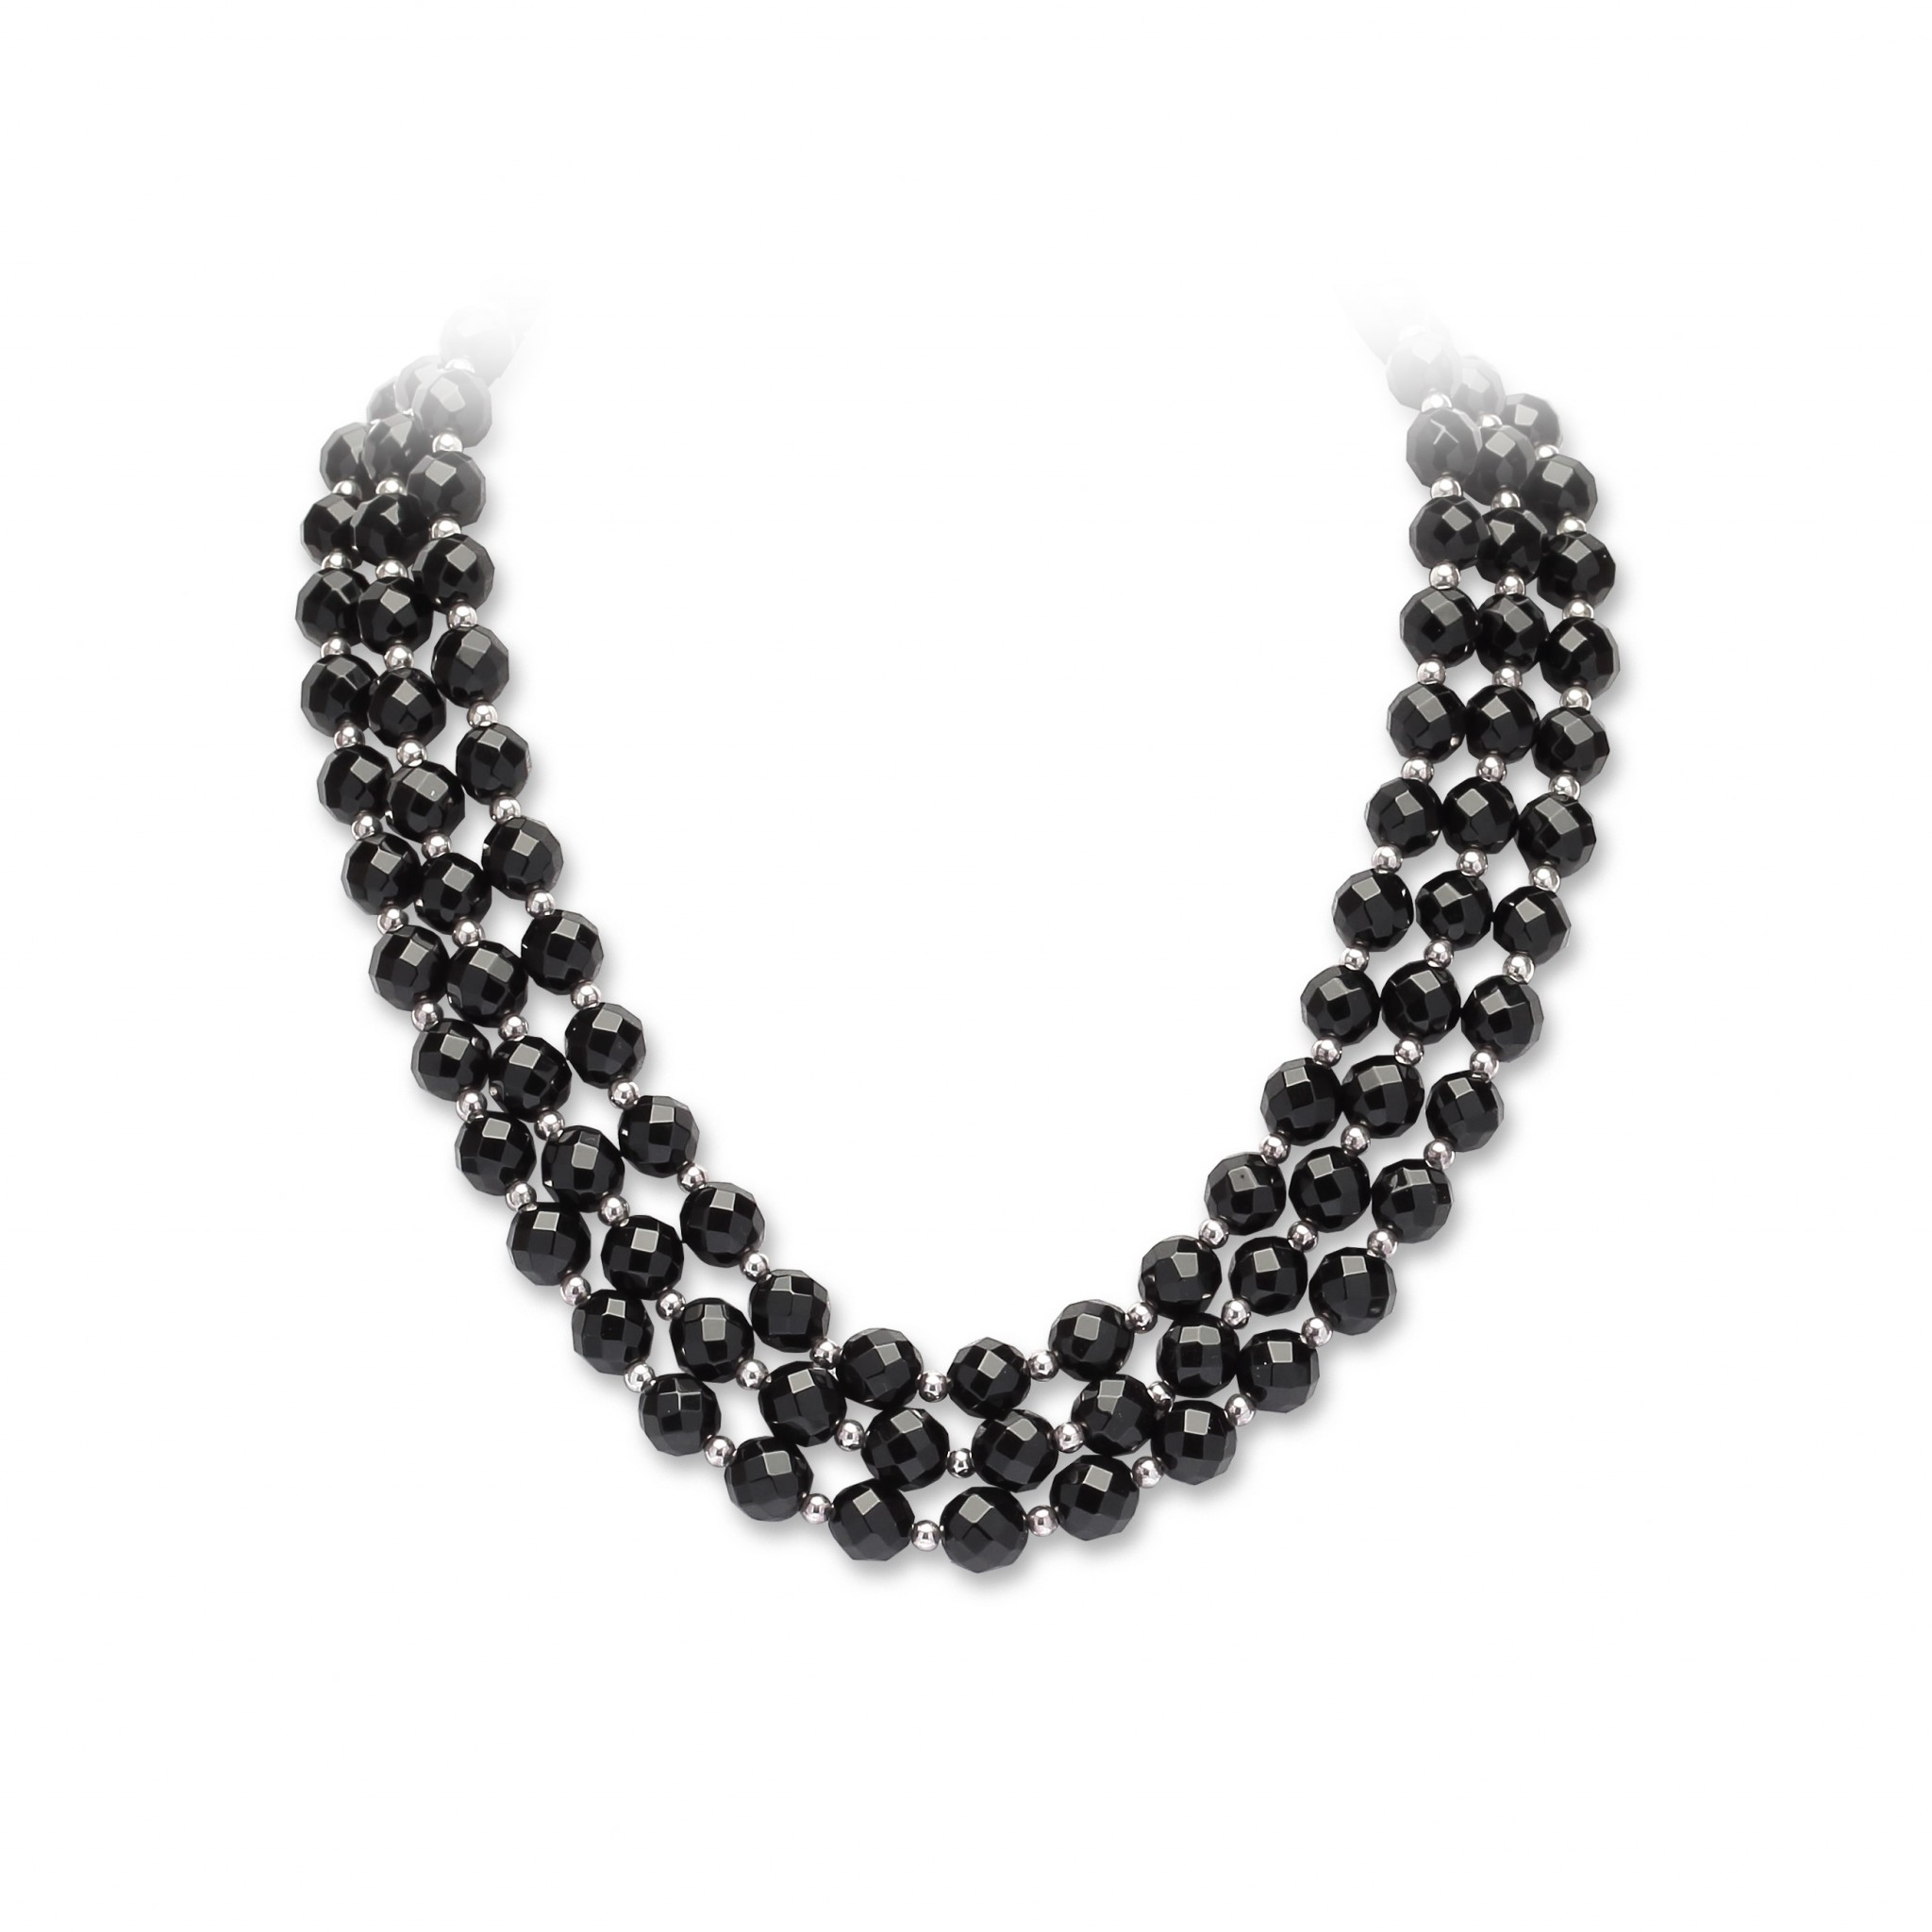 Onyx 3 row necklace